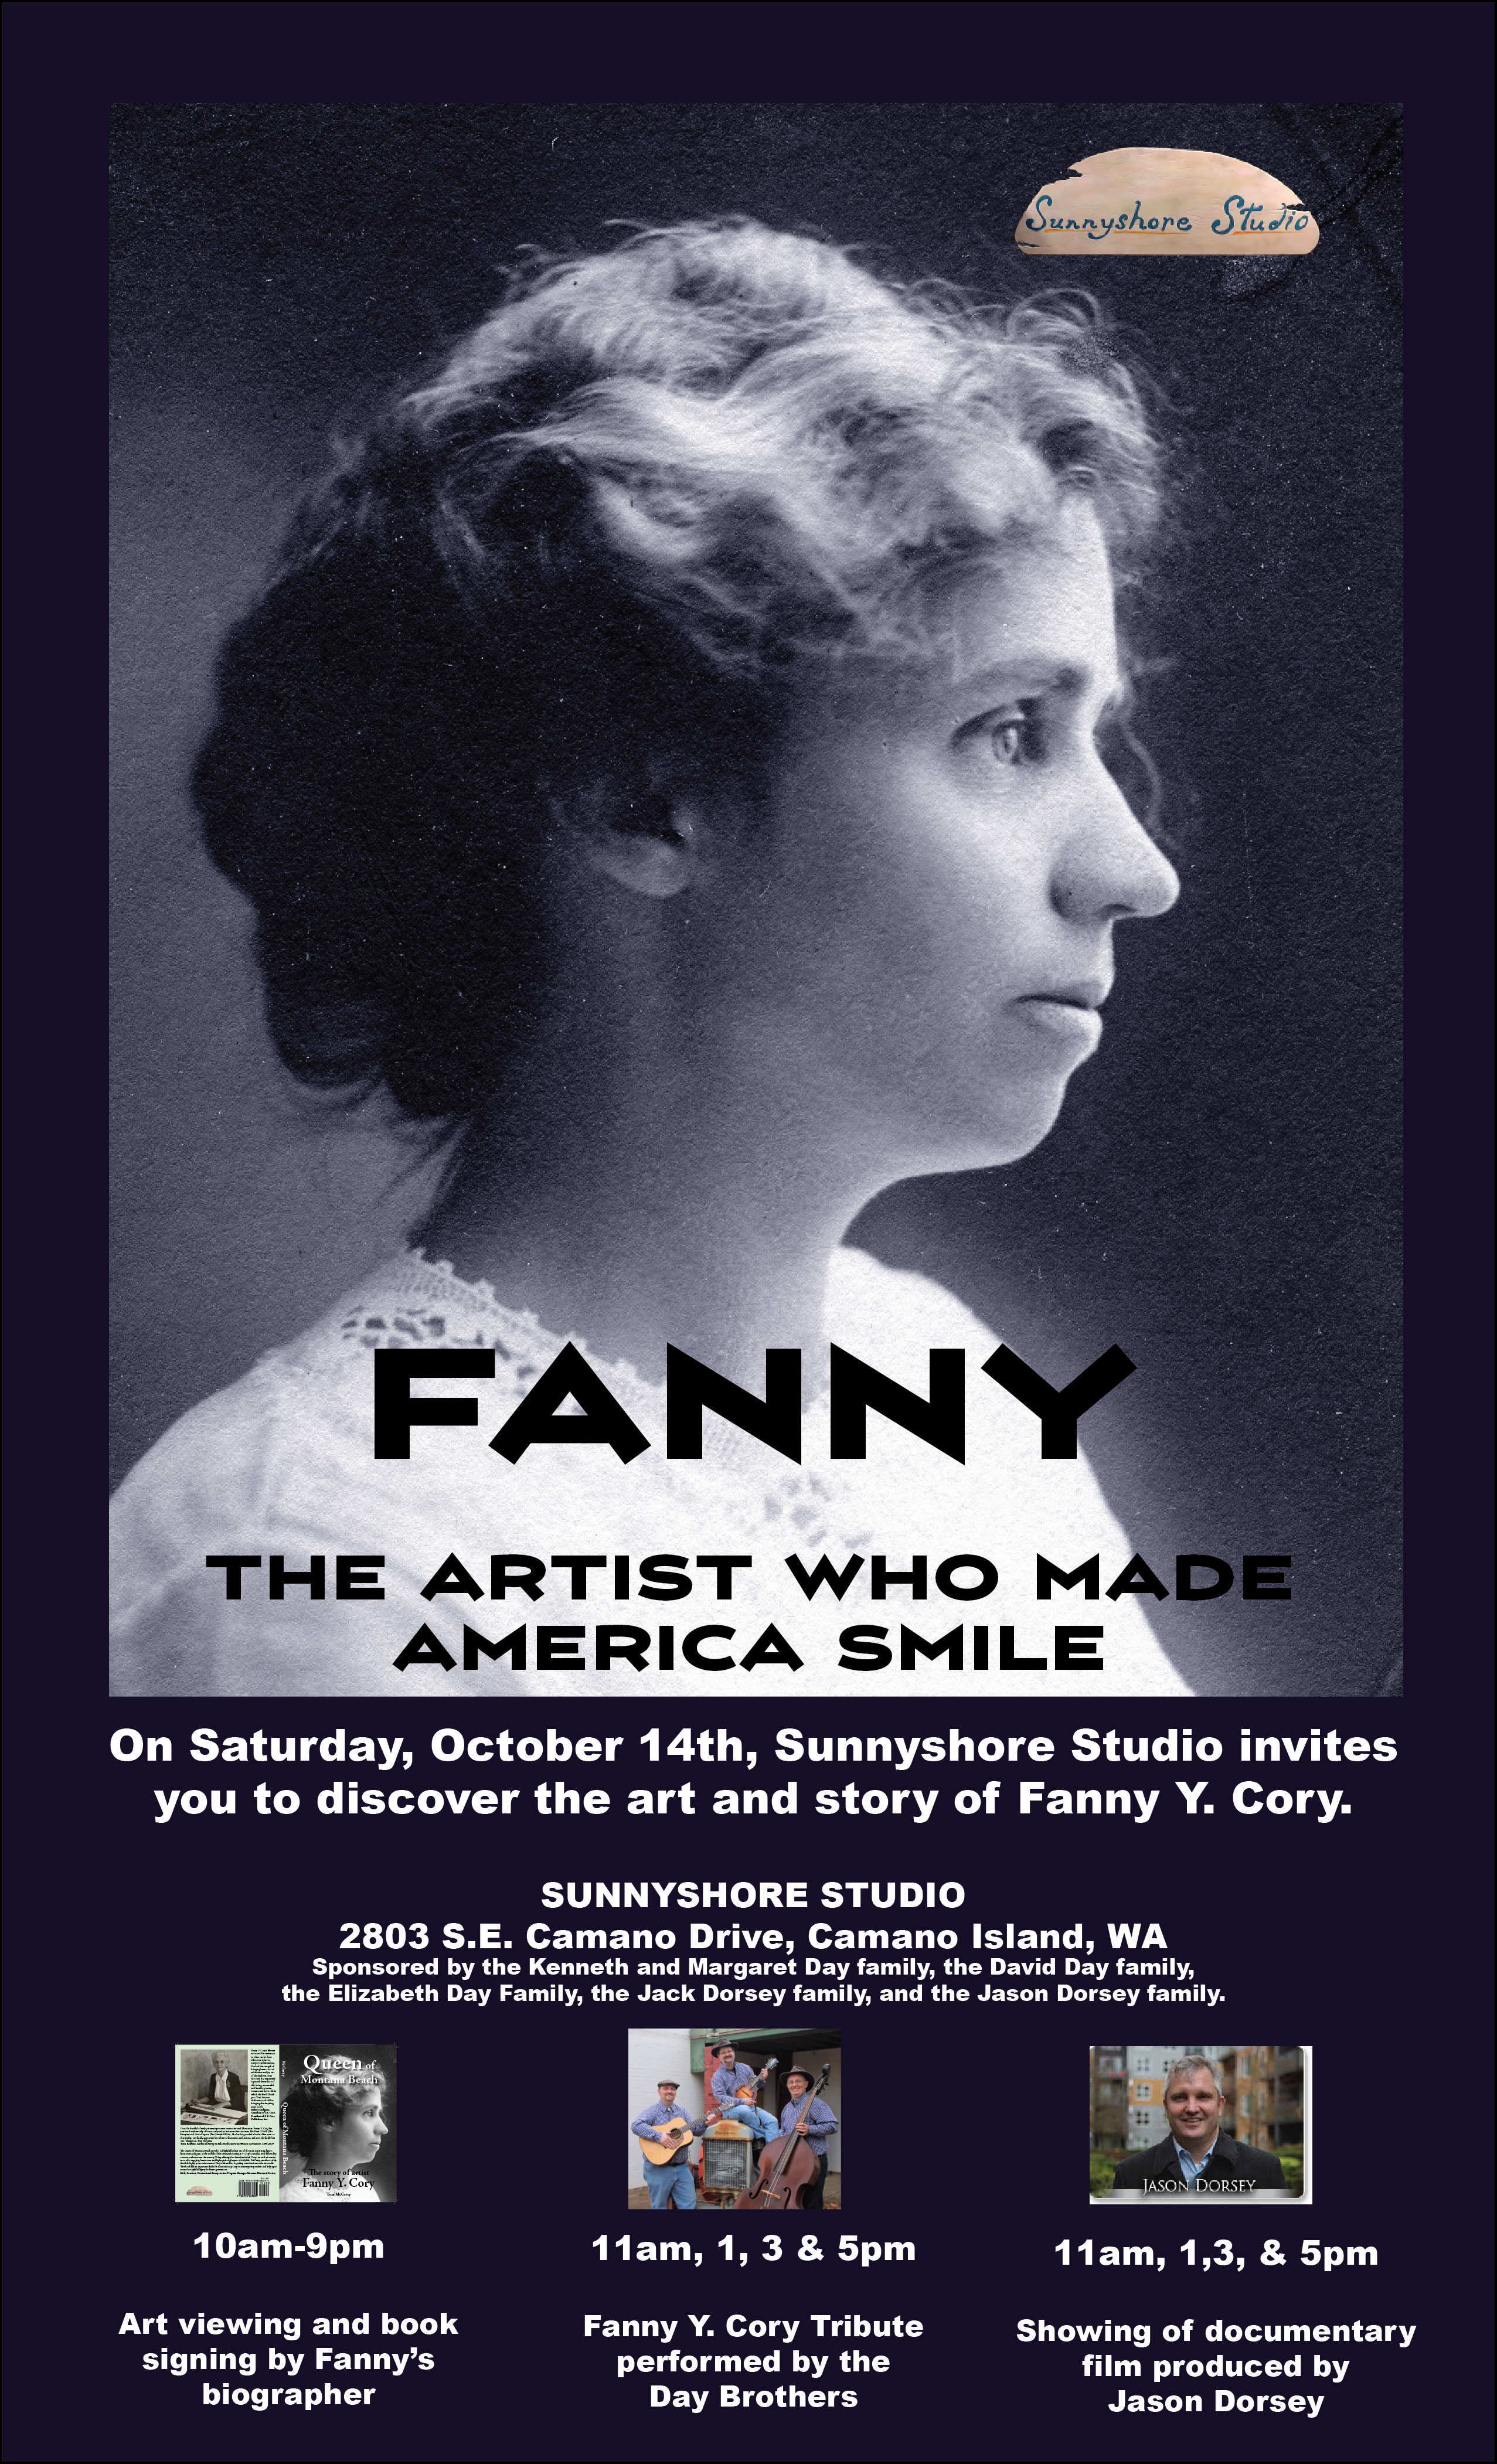 FANNY, the artist who made America smile showings